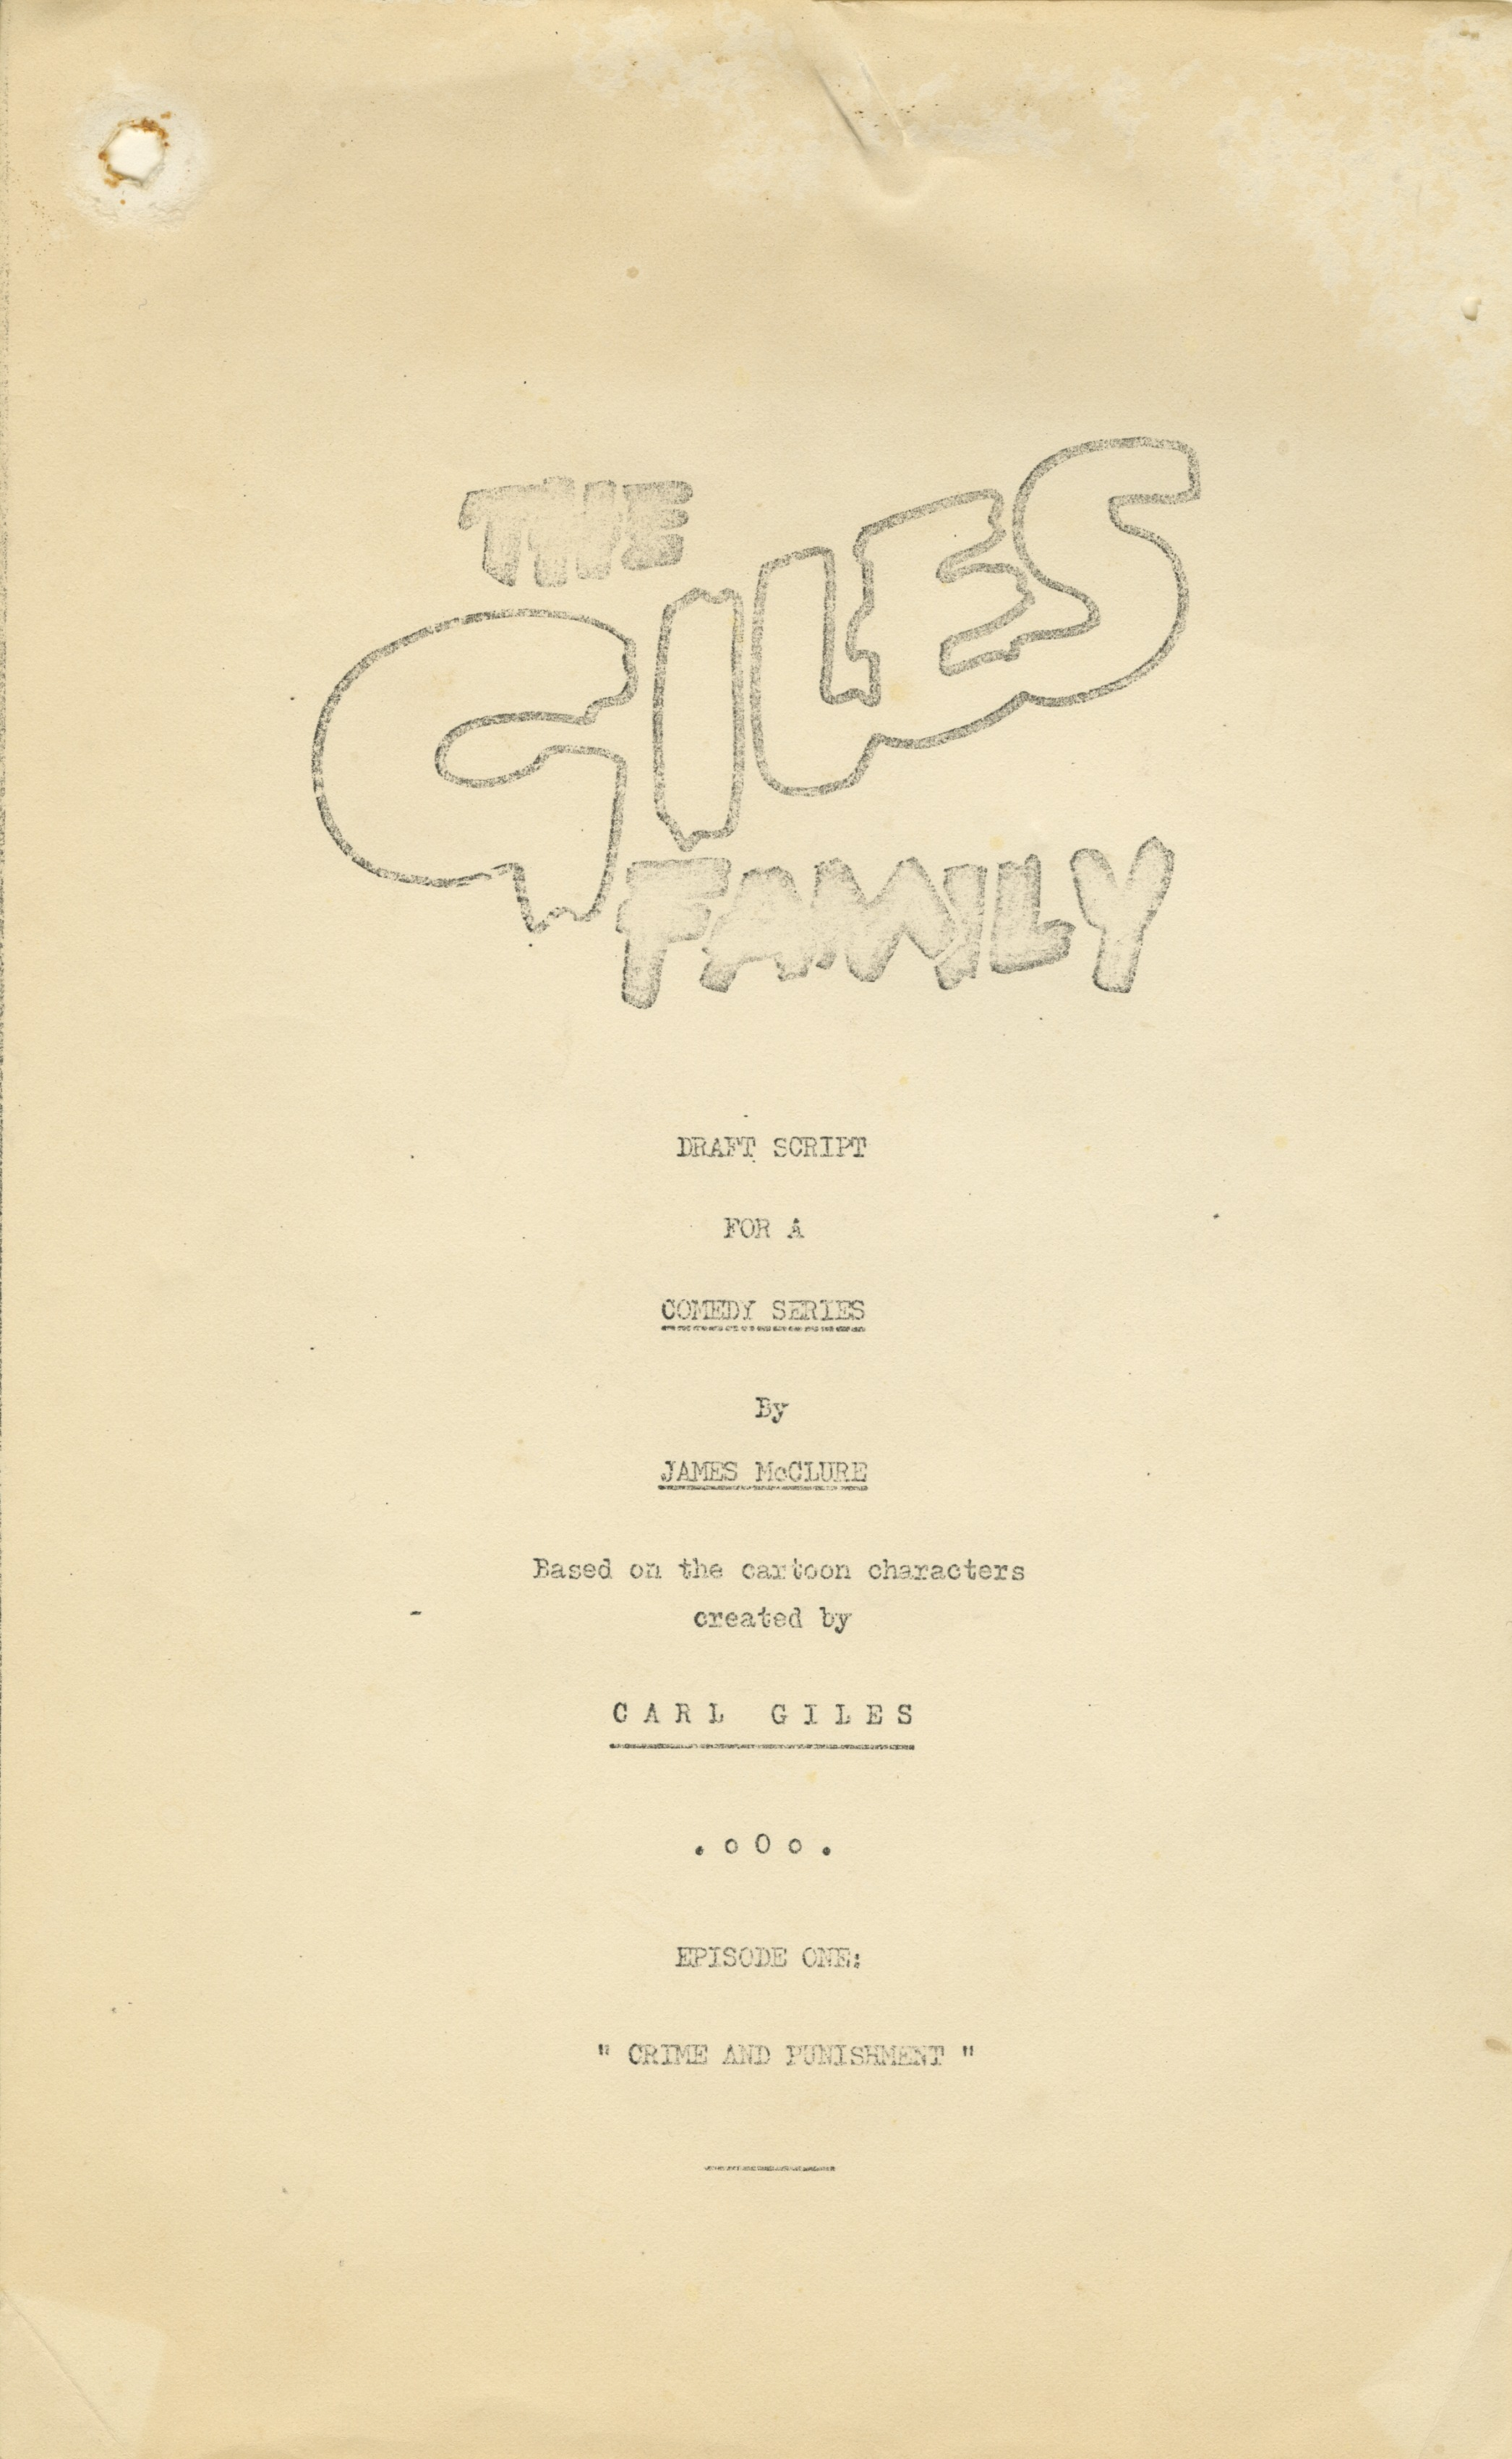 Front page of draft script for an episode of an animated comedy series about the Giles Family - James McClure, undated (Image ref: GACS00775A)